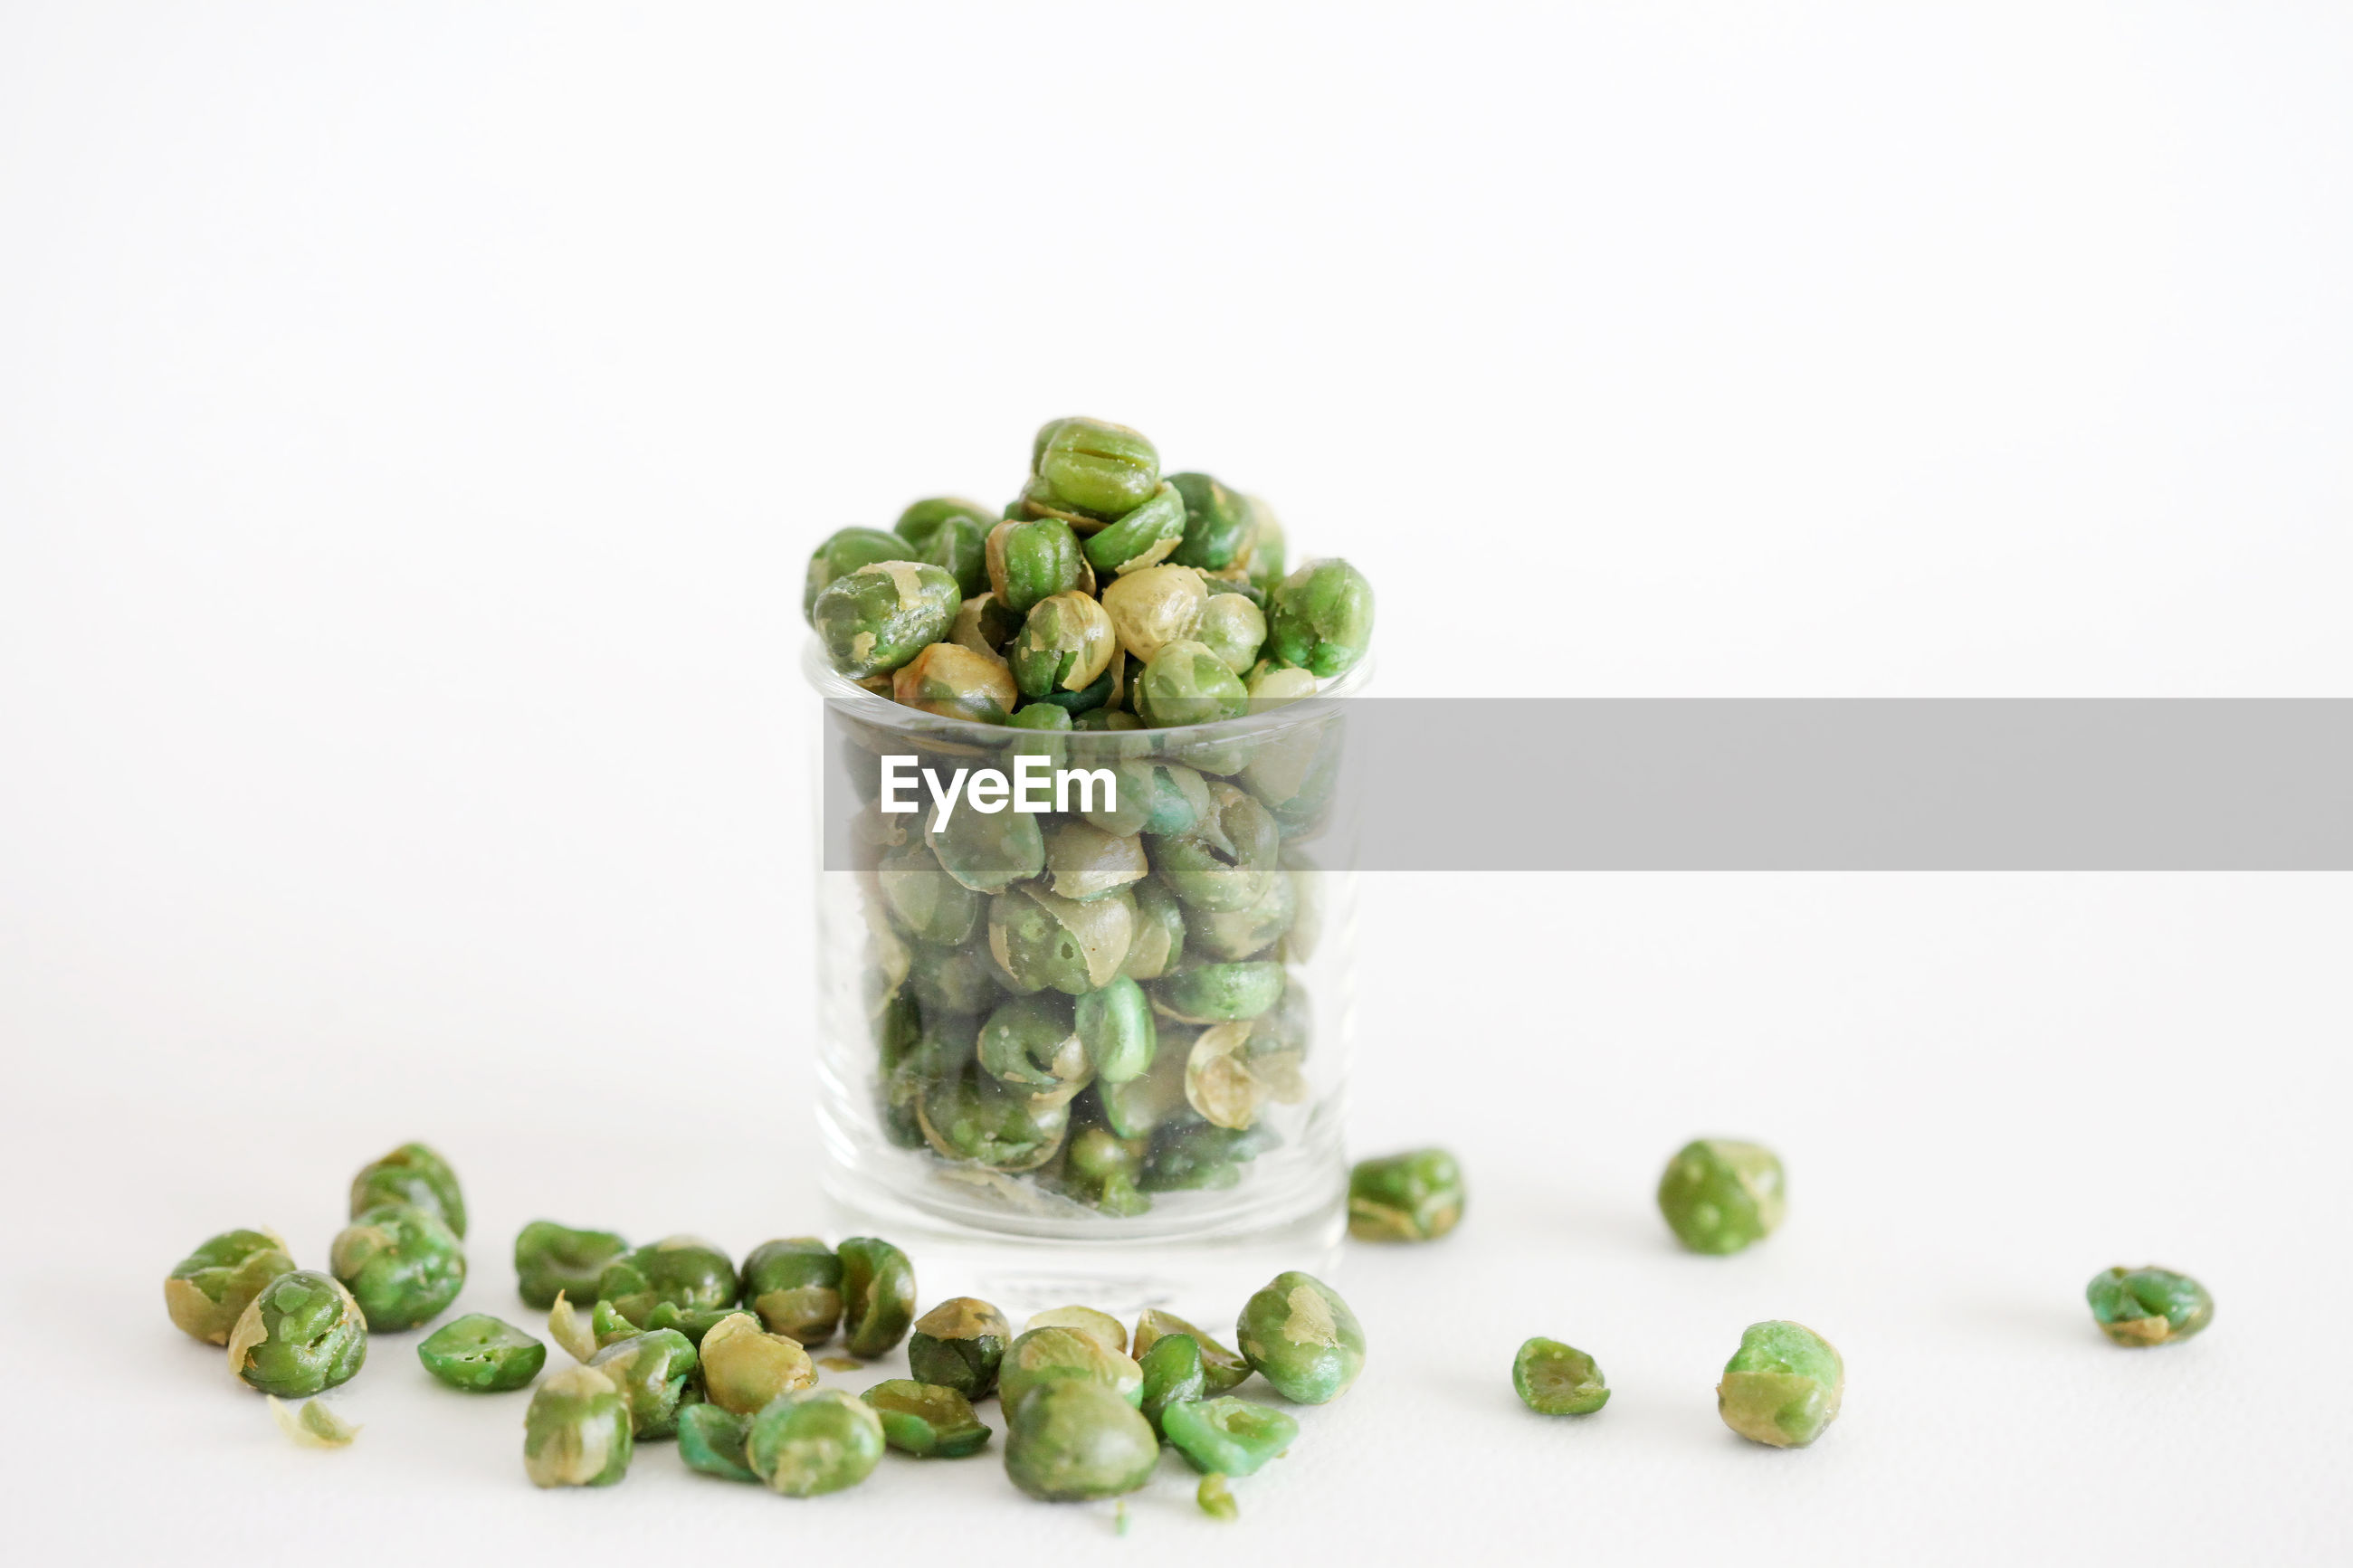 Close-up of green pea in glass against white background